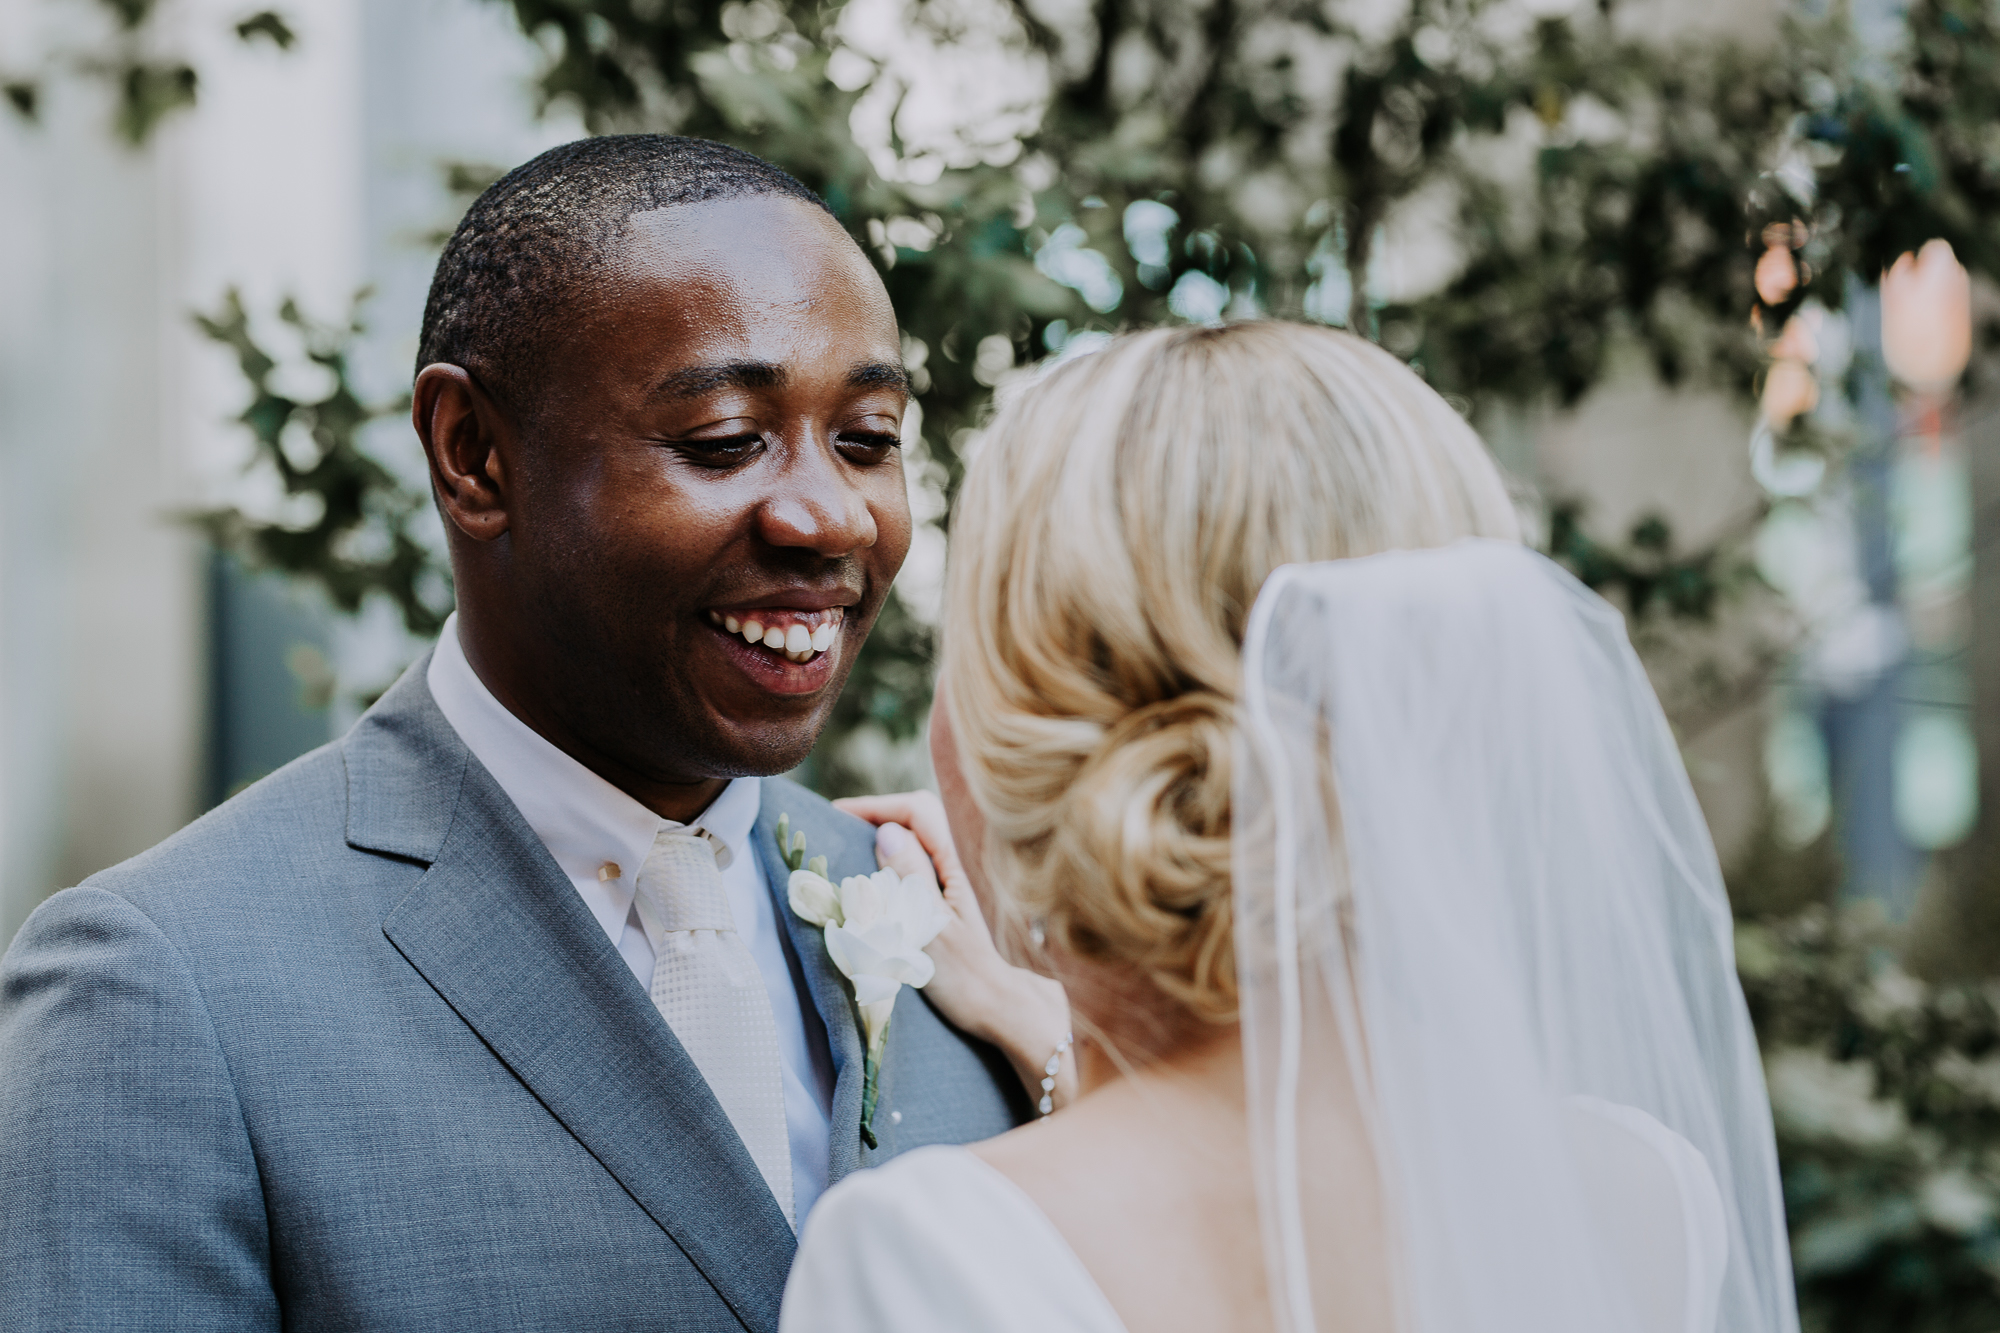 Bethany+Kevin_Married_Blog_0056.jpg